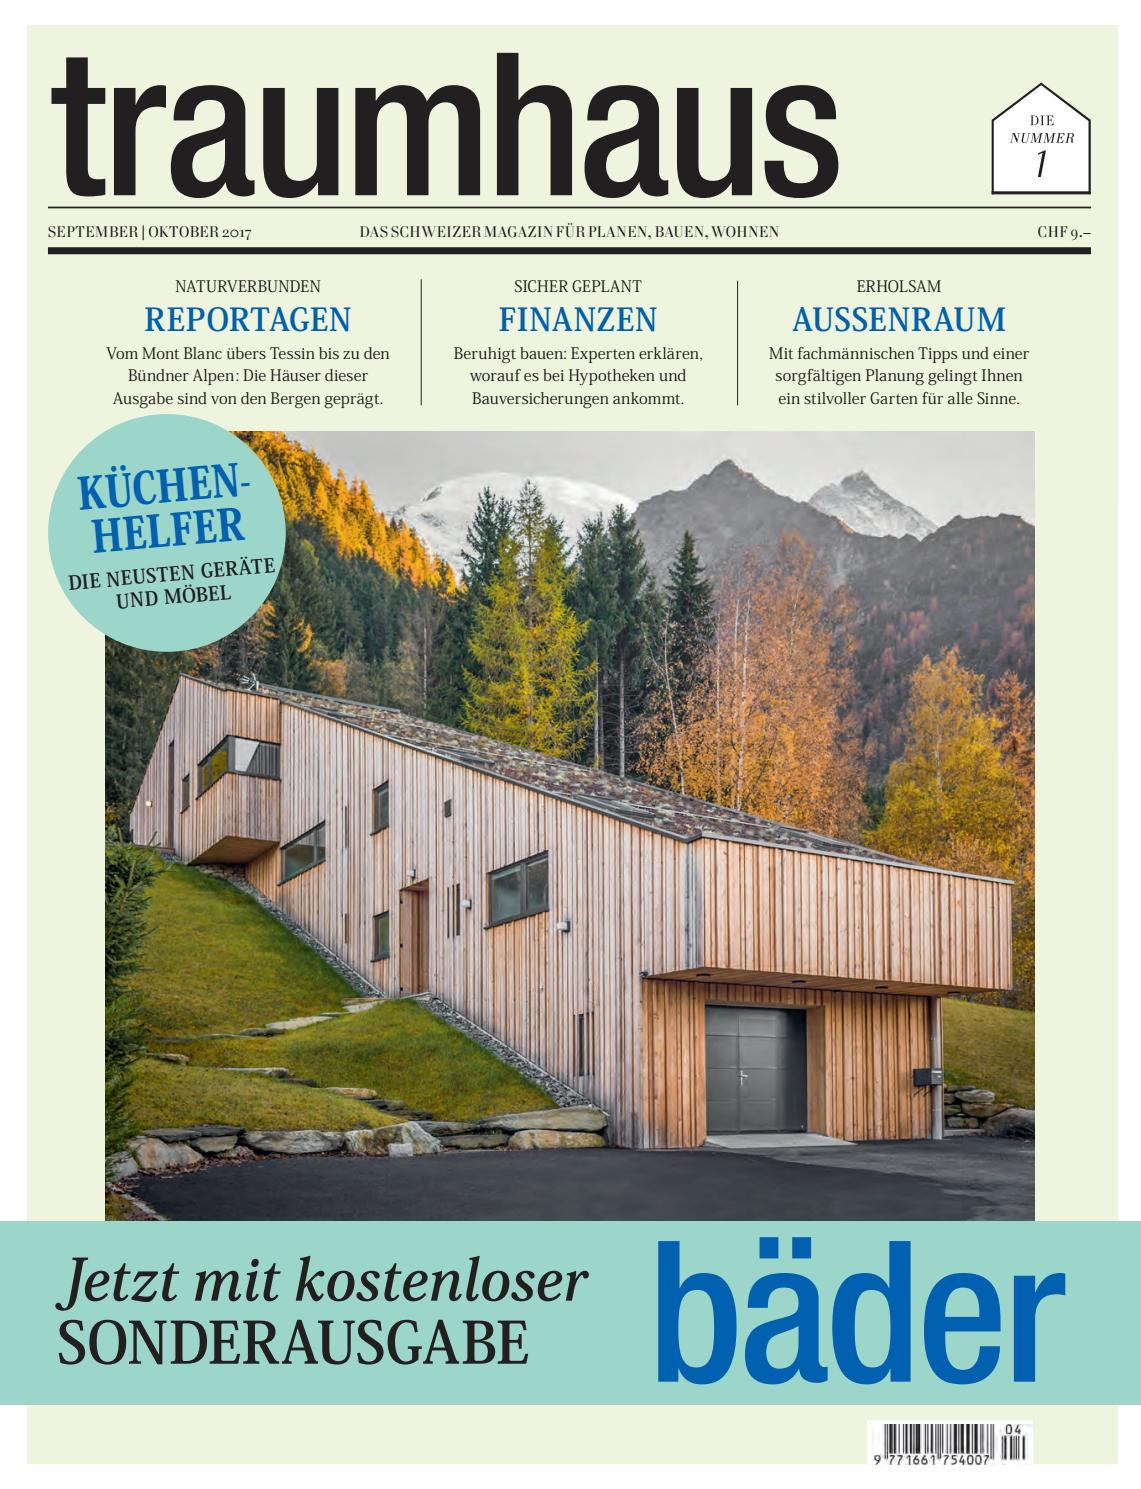 traumhaus 04 2017 by bl verlag ag issuu. Black Bedroom Furniture Sets. Home Design Ideas